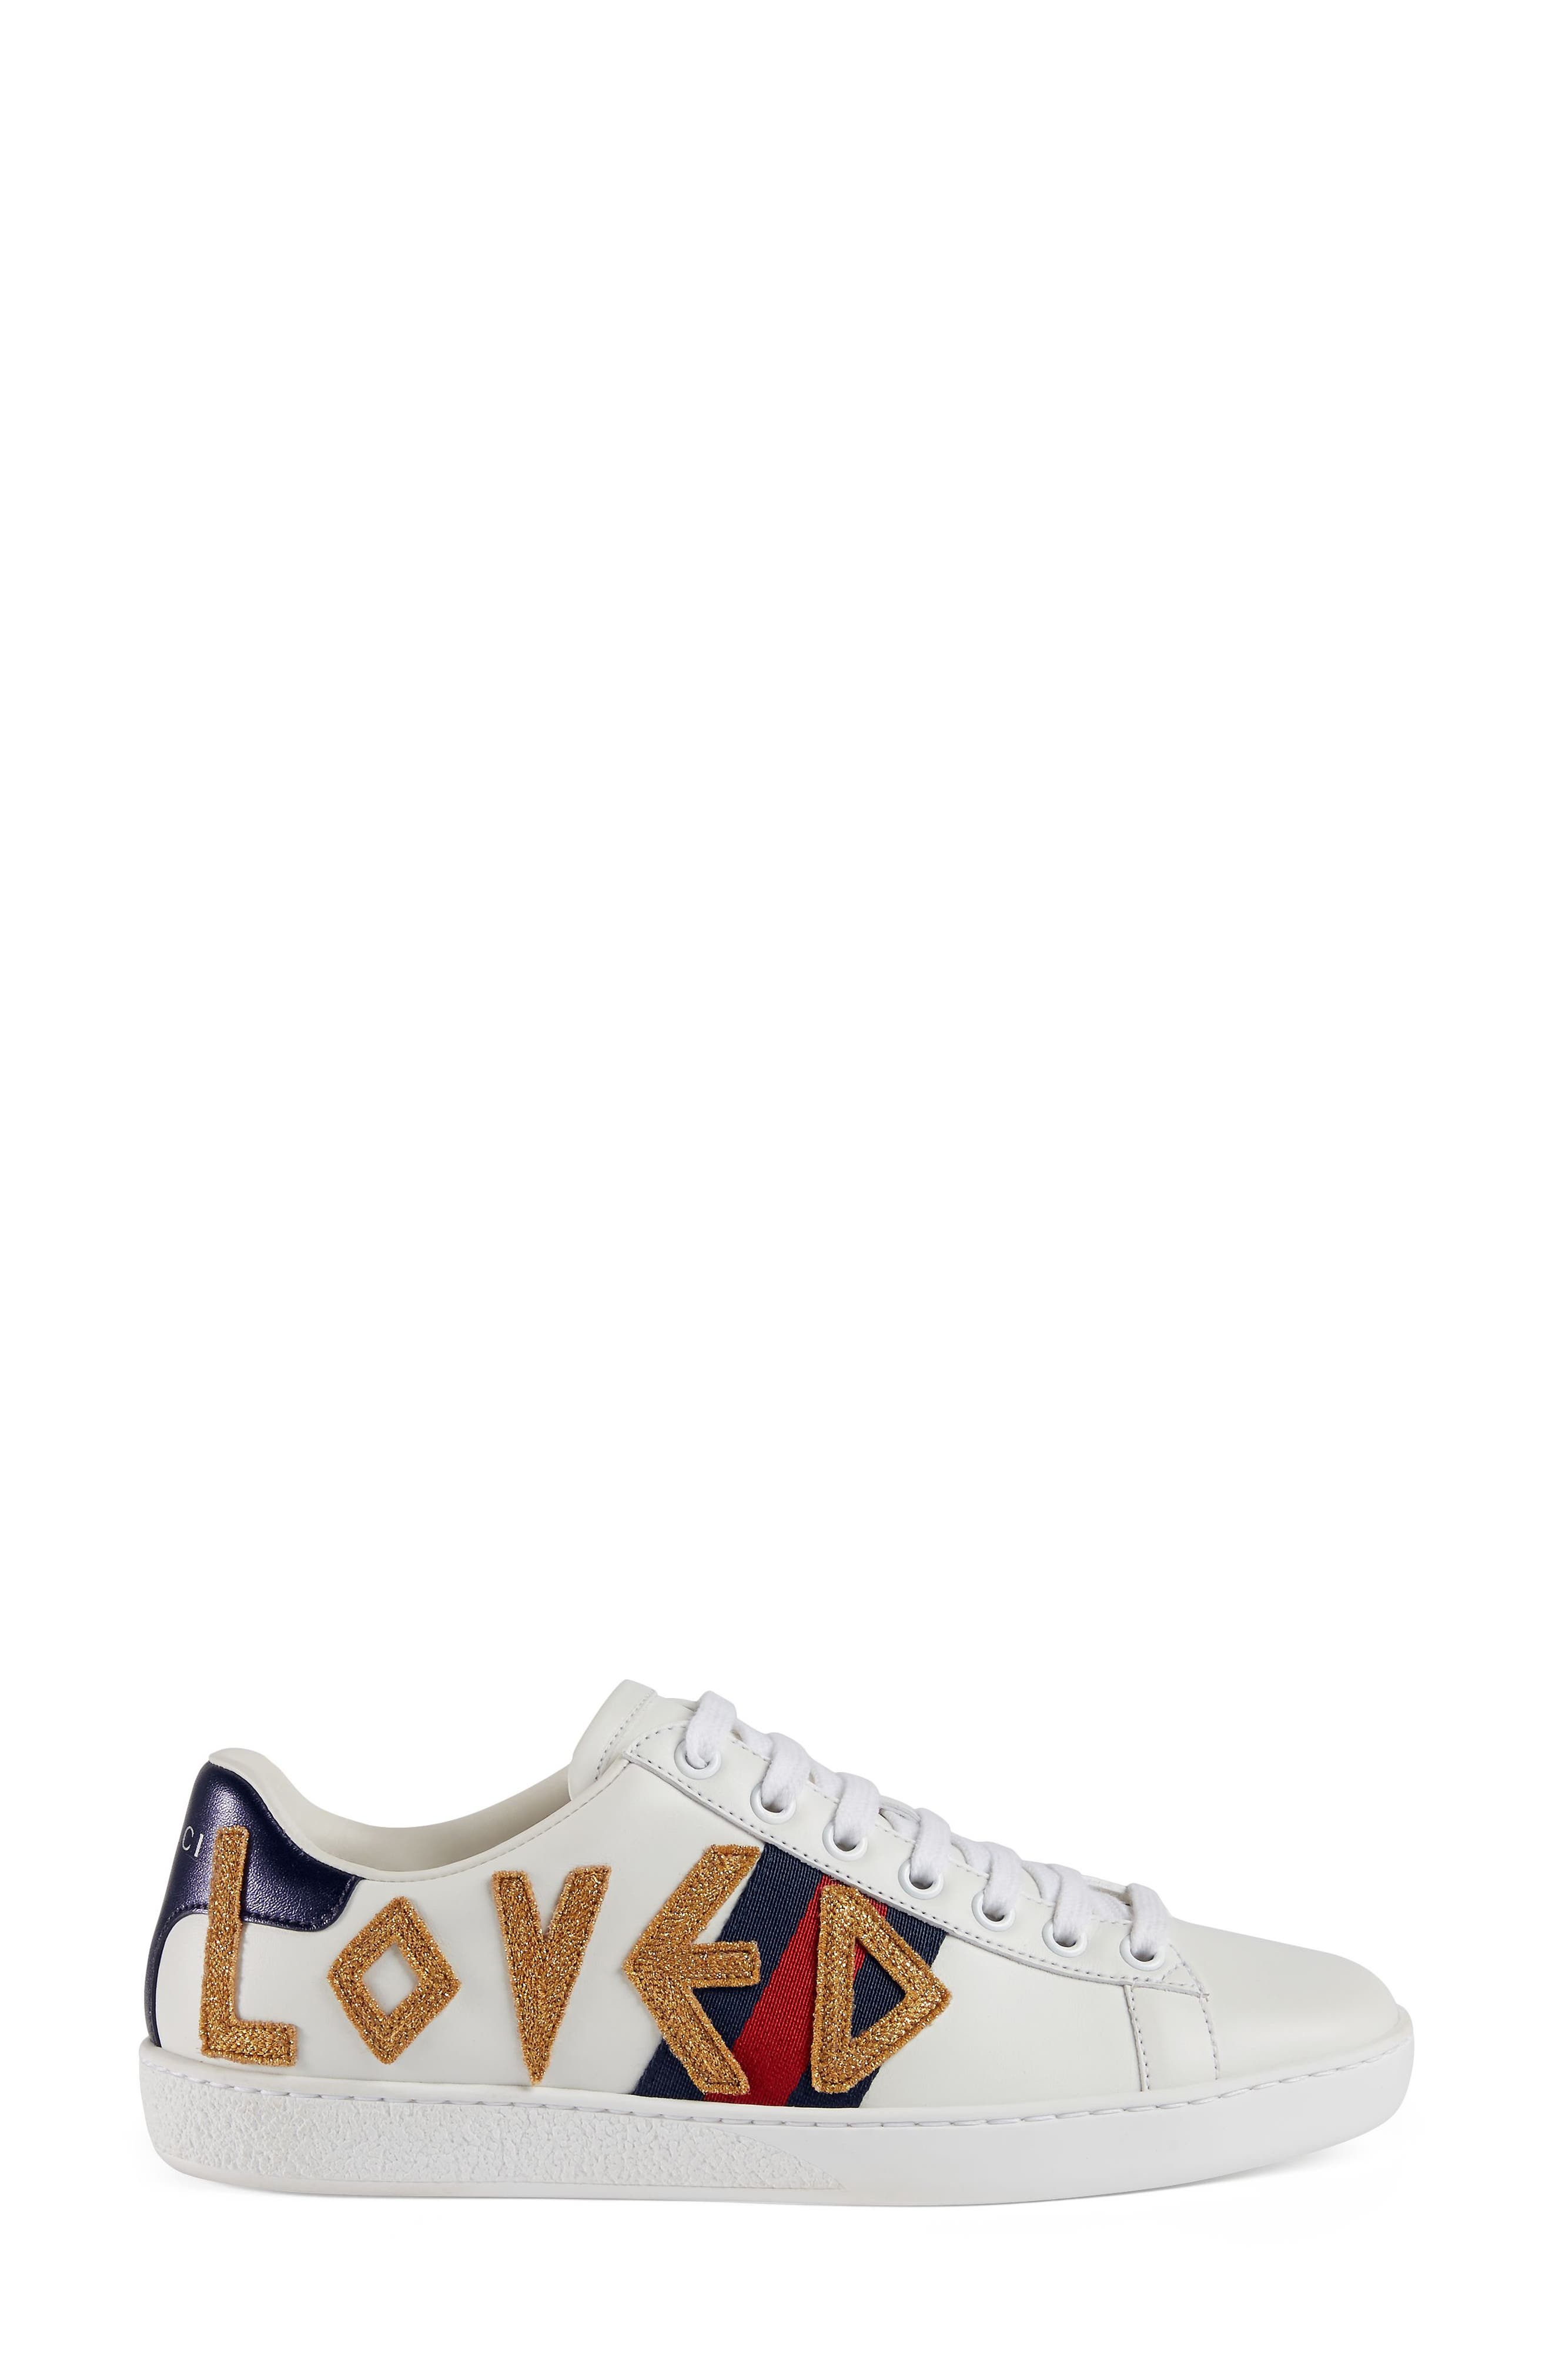 GUCCI, New Ace Loved Sneakers, Alternate thumbnail 3, color, WHITE